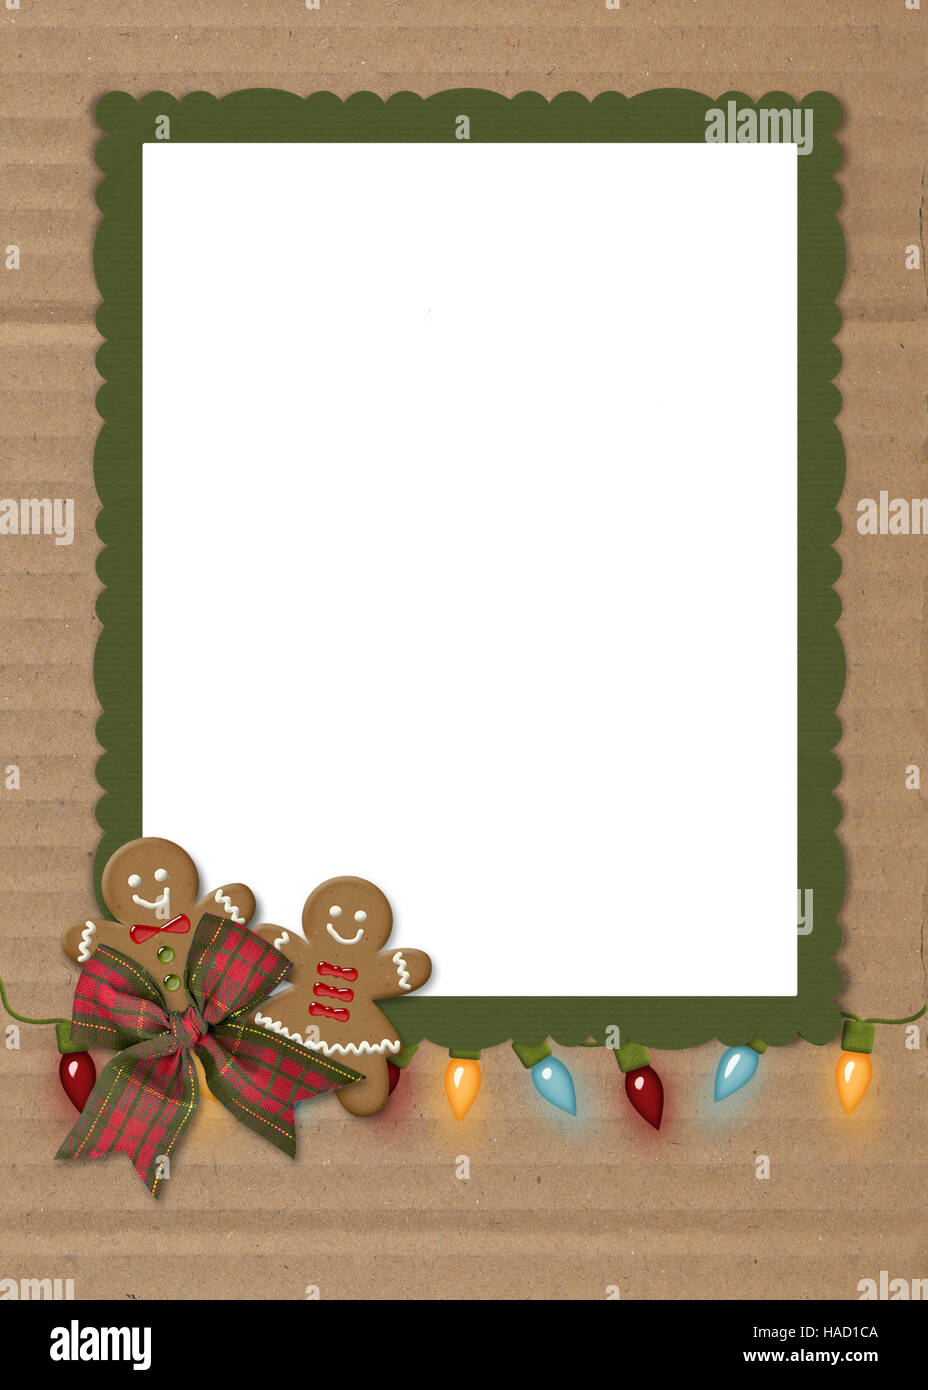 gingerbread cookies and string of Christmas lights on cardboard and ...